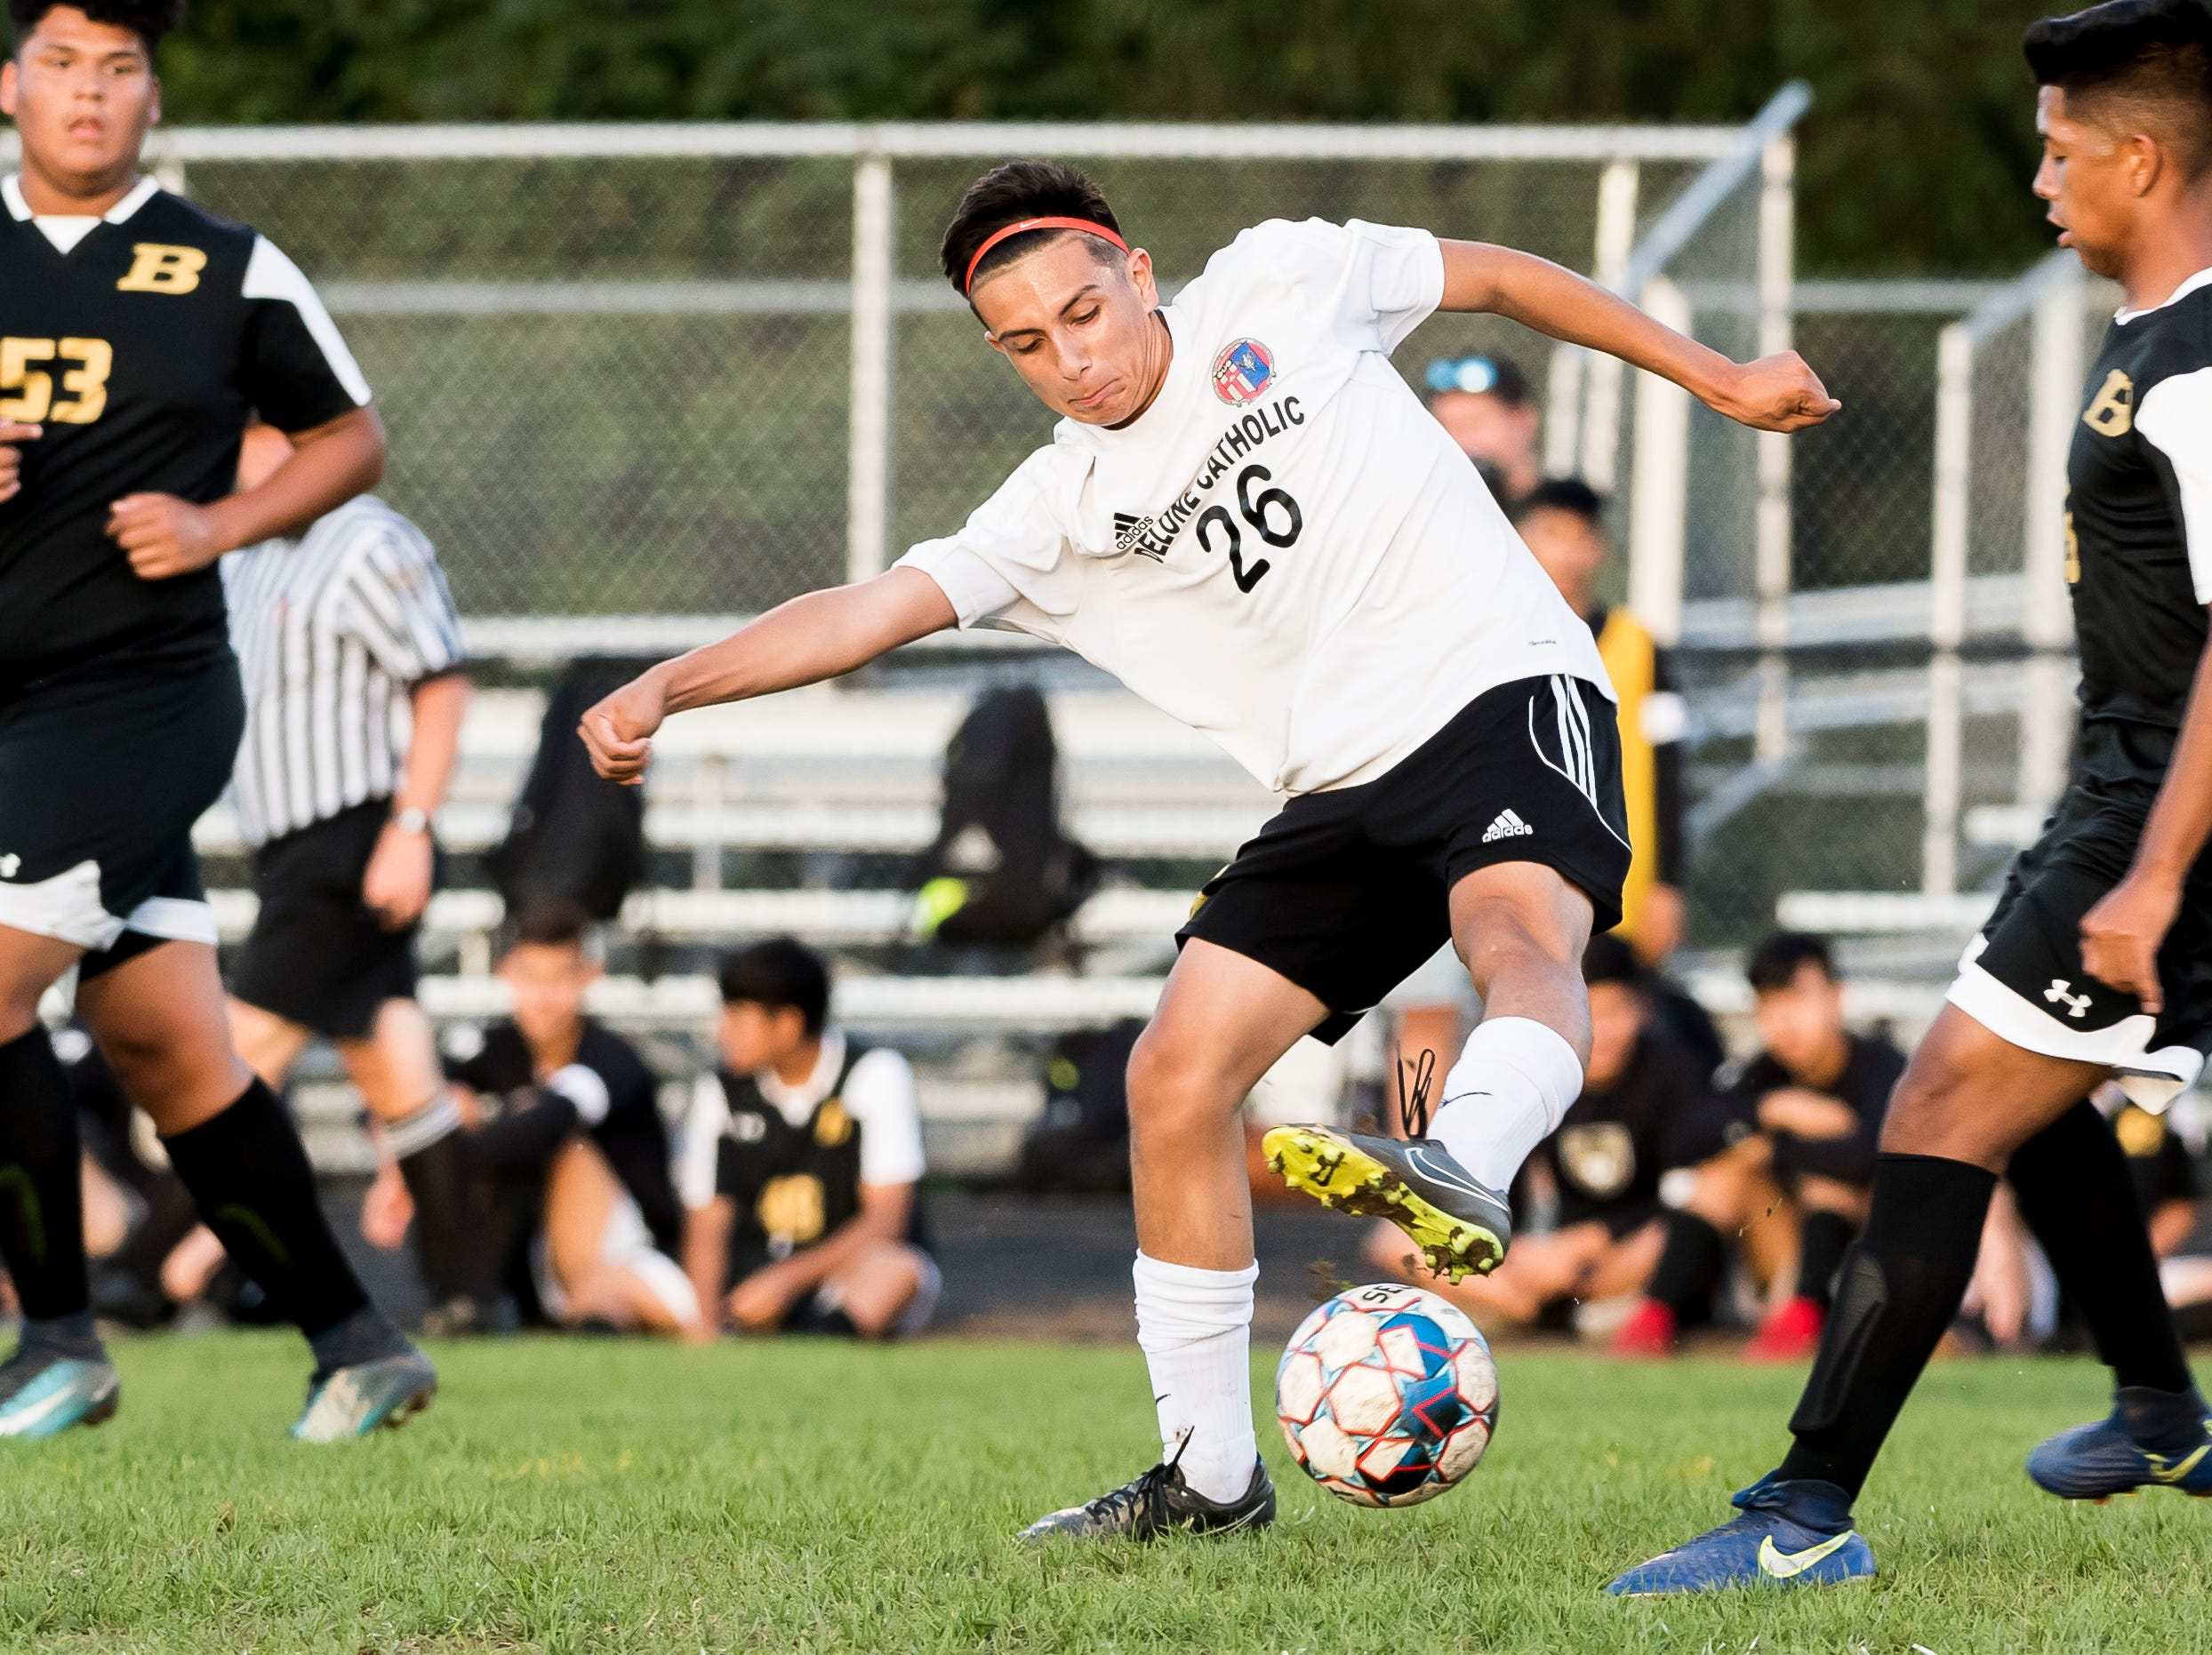 Delone Catholic's Alex Zepeda intercepts a pass intended for a Biglerville player during a game on Wednesday, October 3, 2018. The Squires fell 3-0.